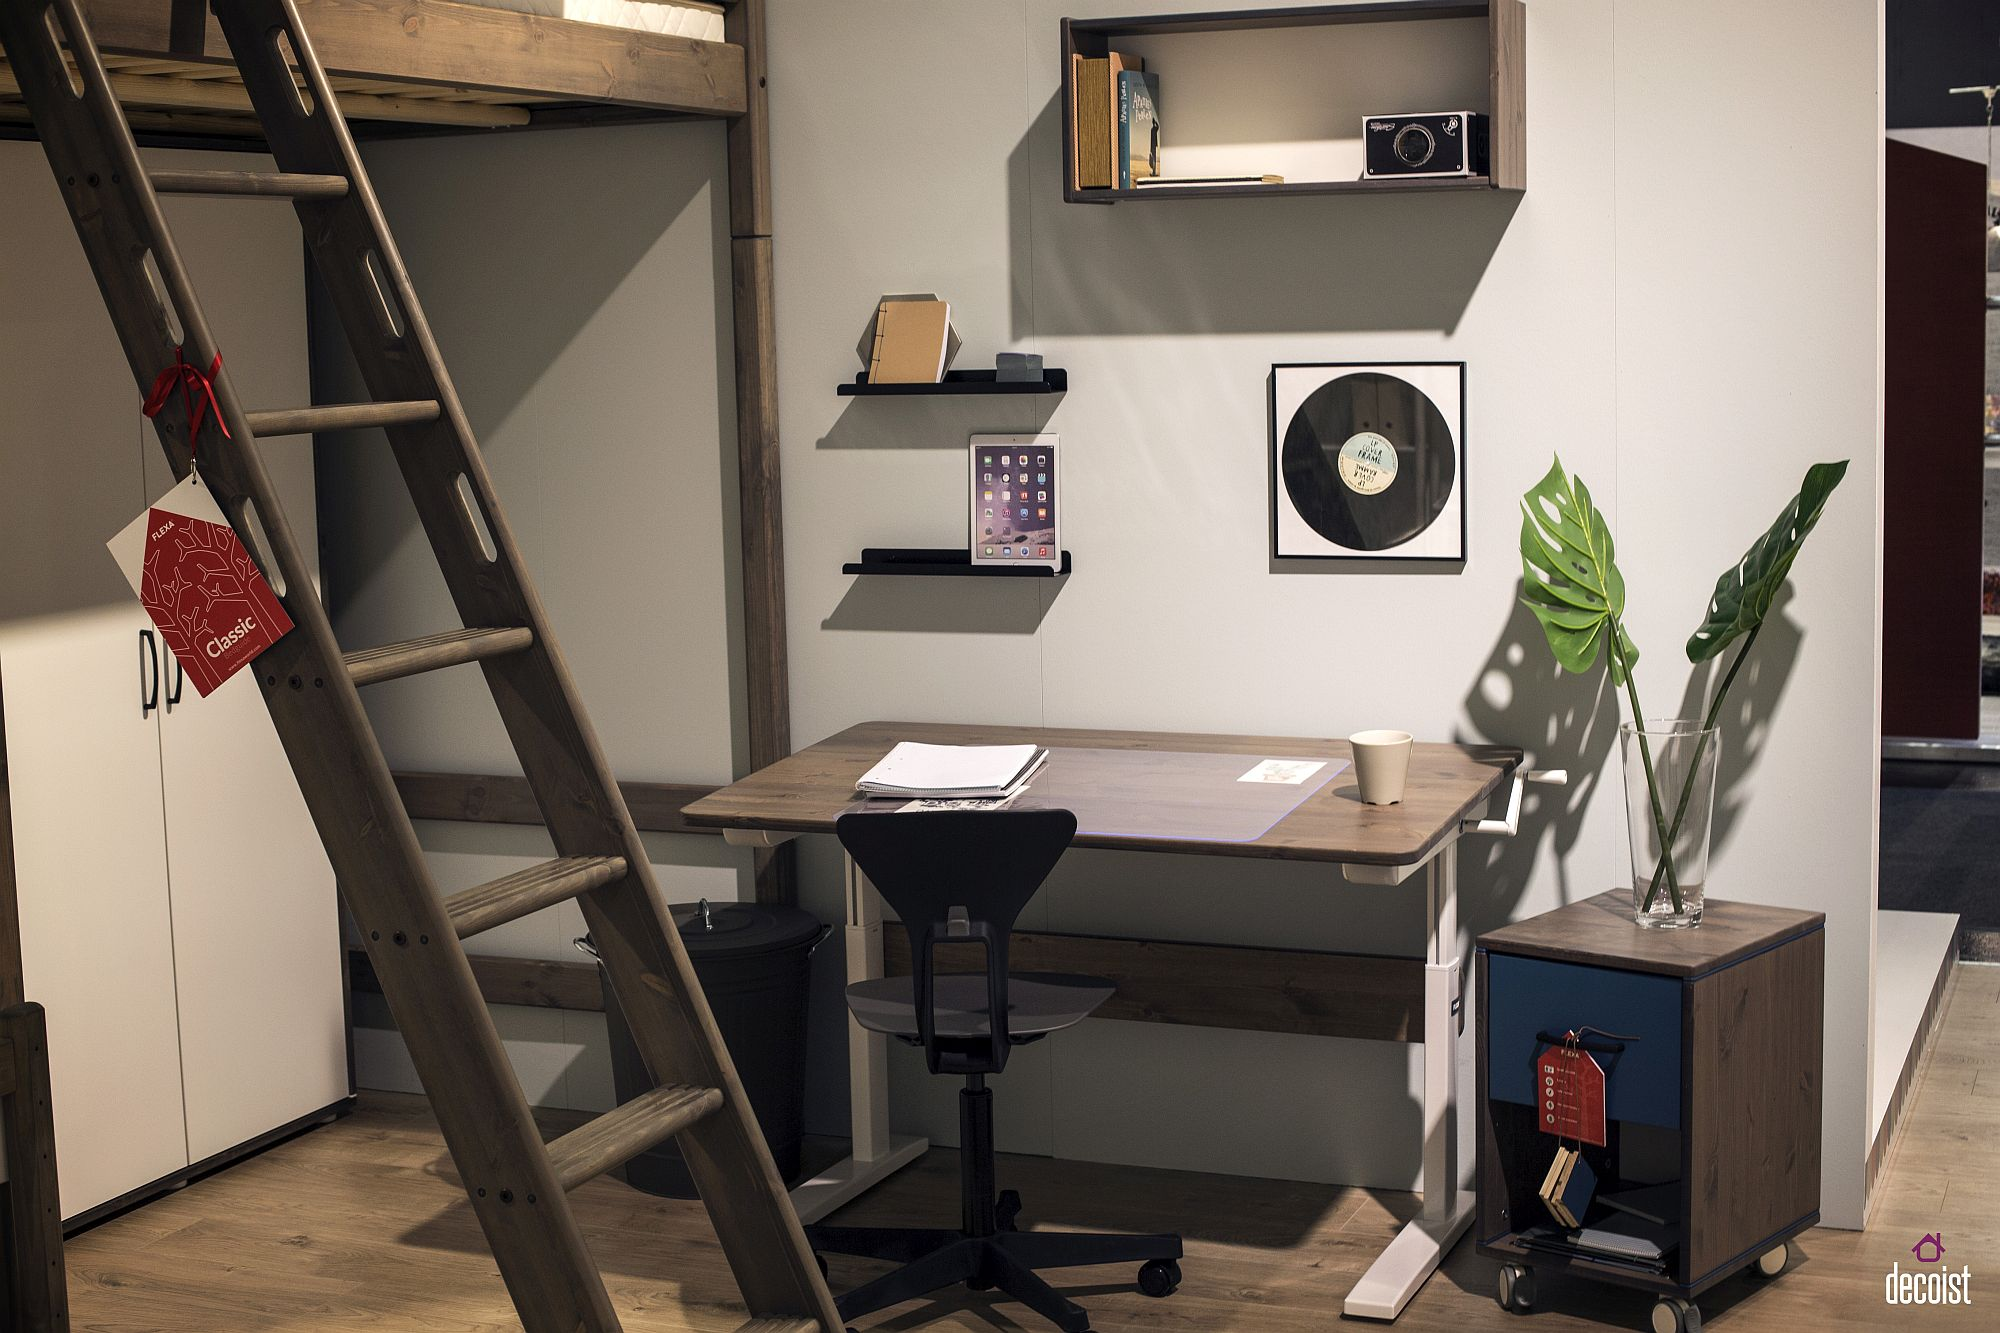 Modular-storage-unit-of-wheels-to-complete-the-kids-room